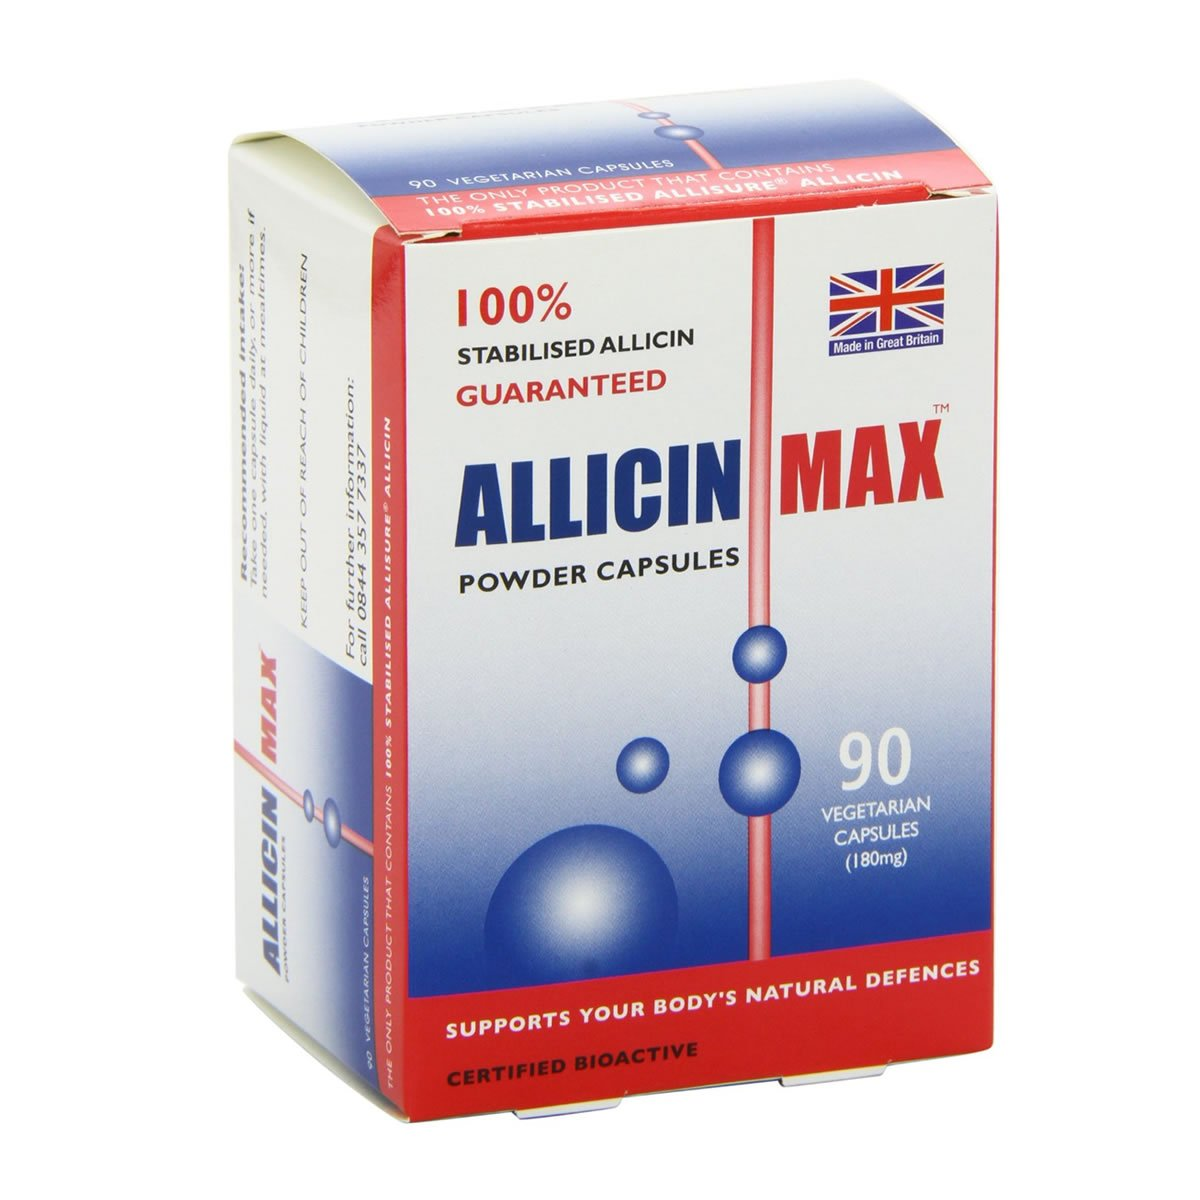 (2 Pack) - Allicin Max - Allicin Max | 90's | 2 PACK BUNDLE